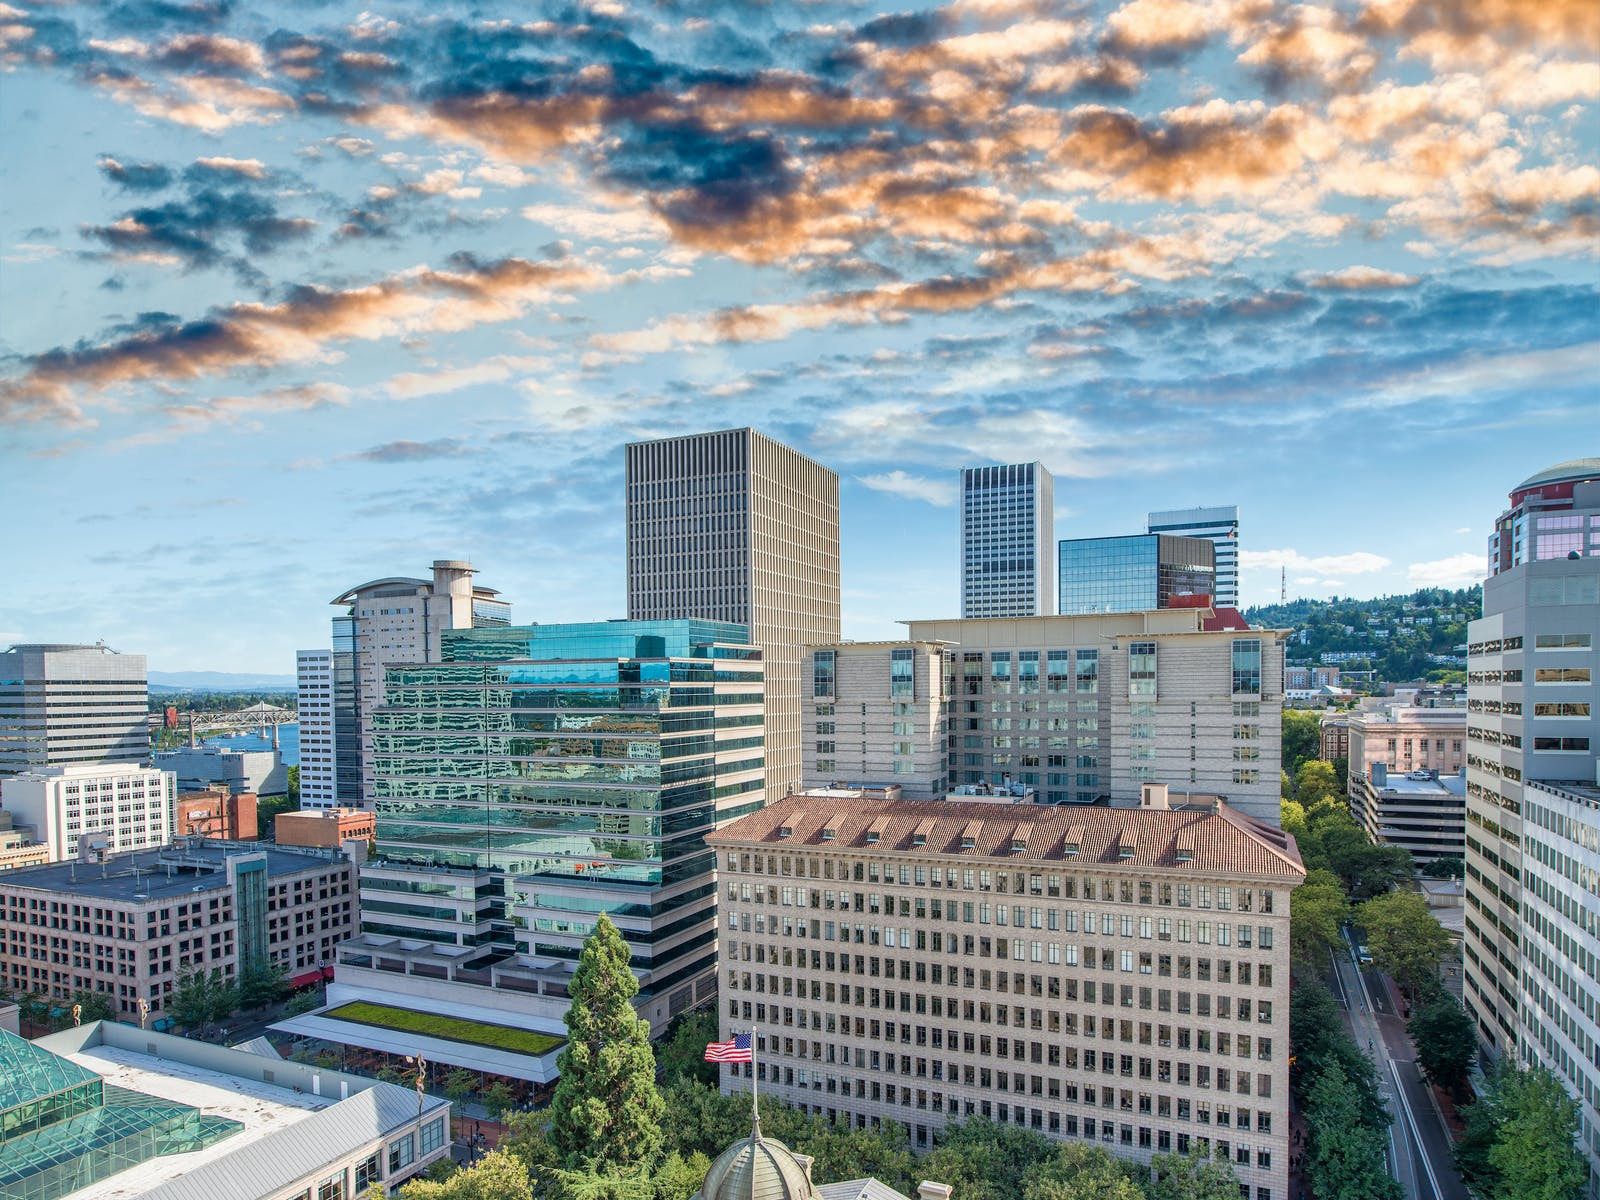 beautiful portland, oregon skyline